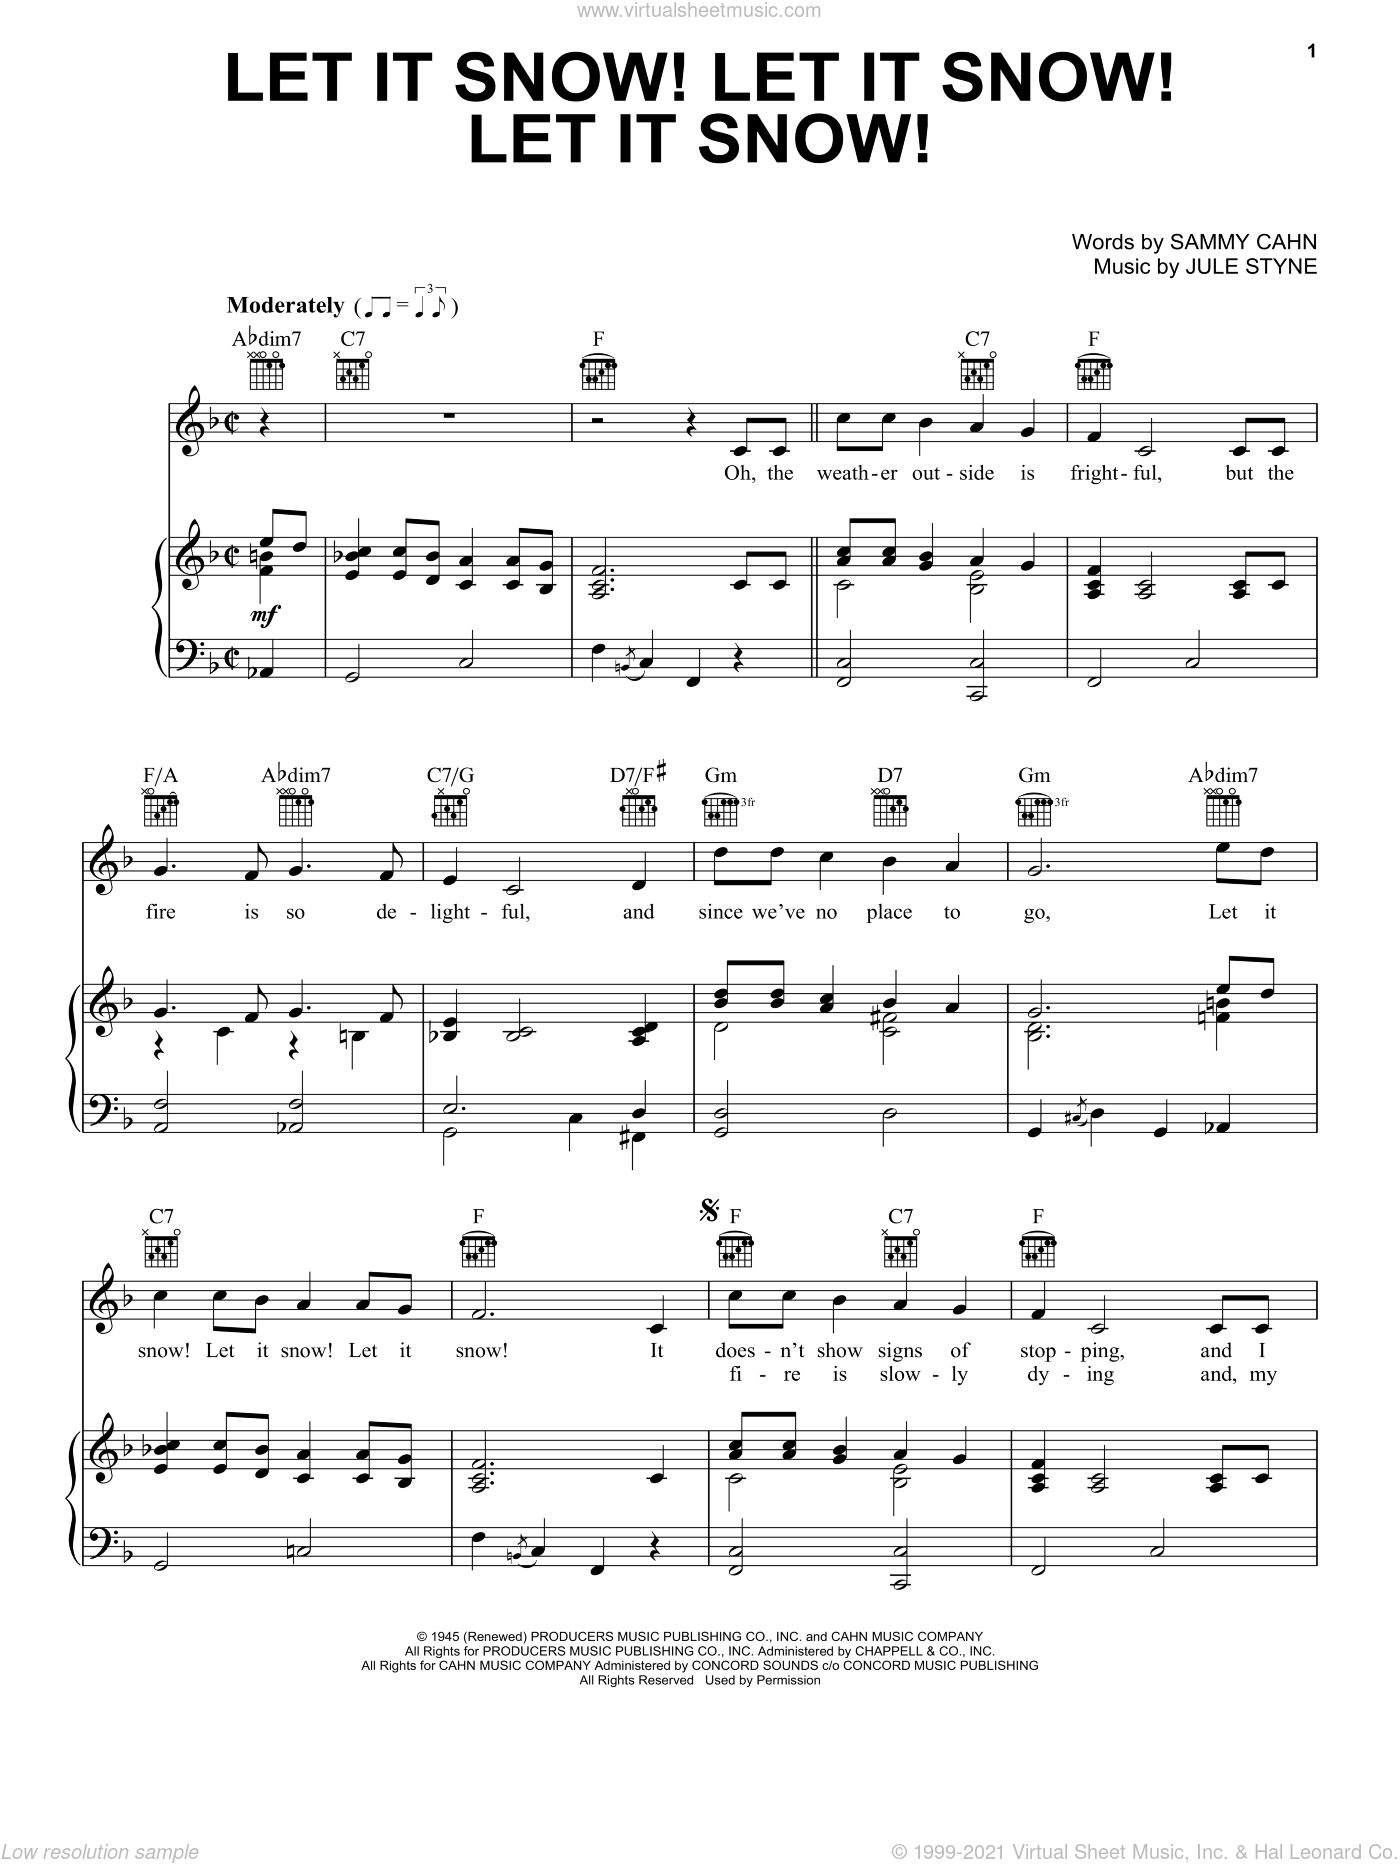 Let It Snow! Let It Snow! Let It Snow! sheet music for voice, piano or guitar by Jule Styne and Sammy Cahn. Score Image Preview.